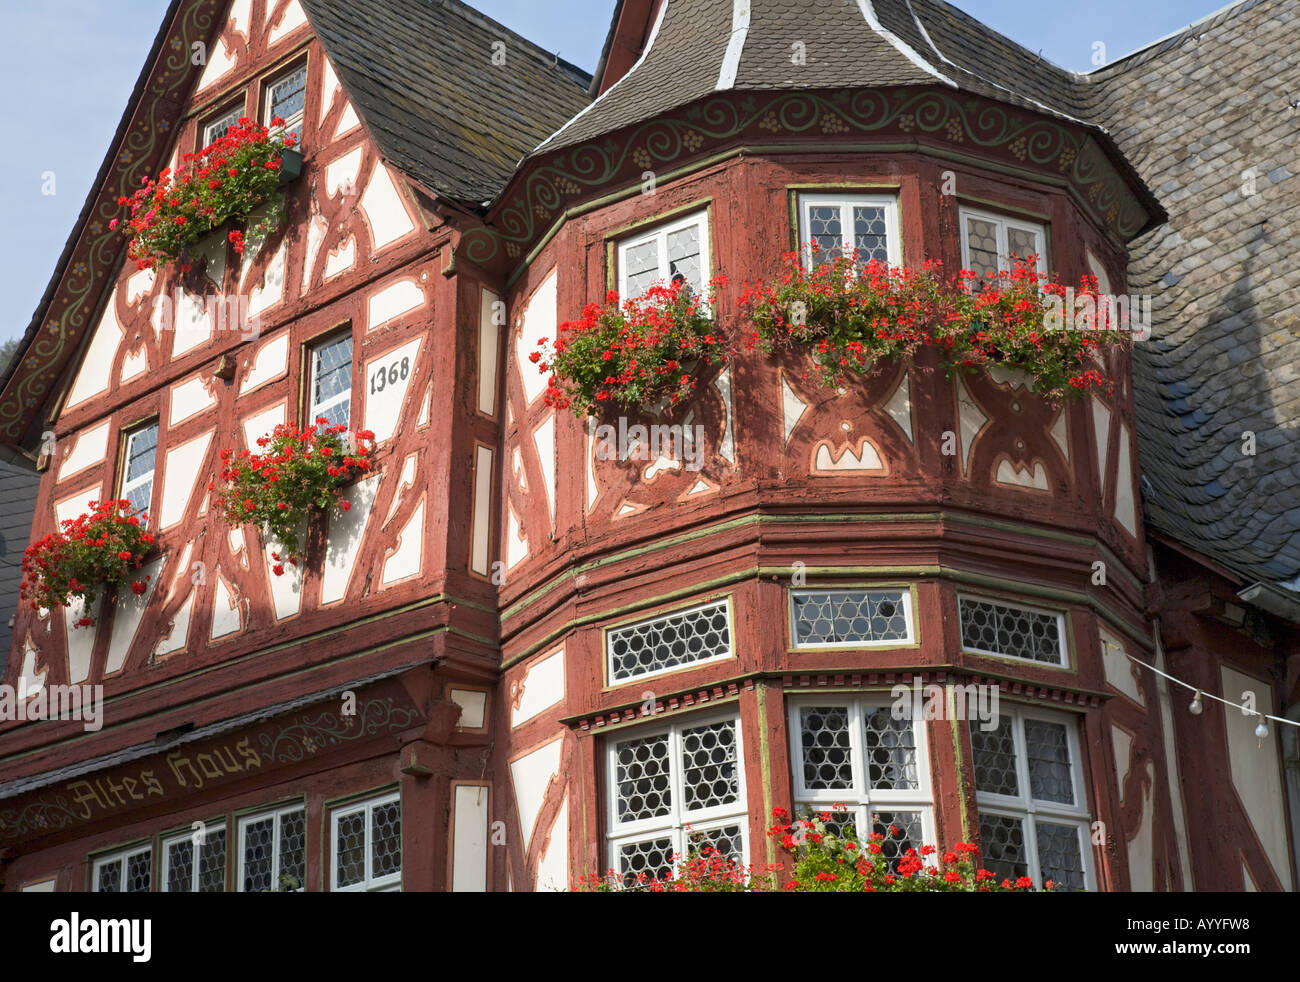 framework architecture in the german middle-rhine valley: an old